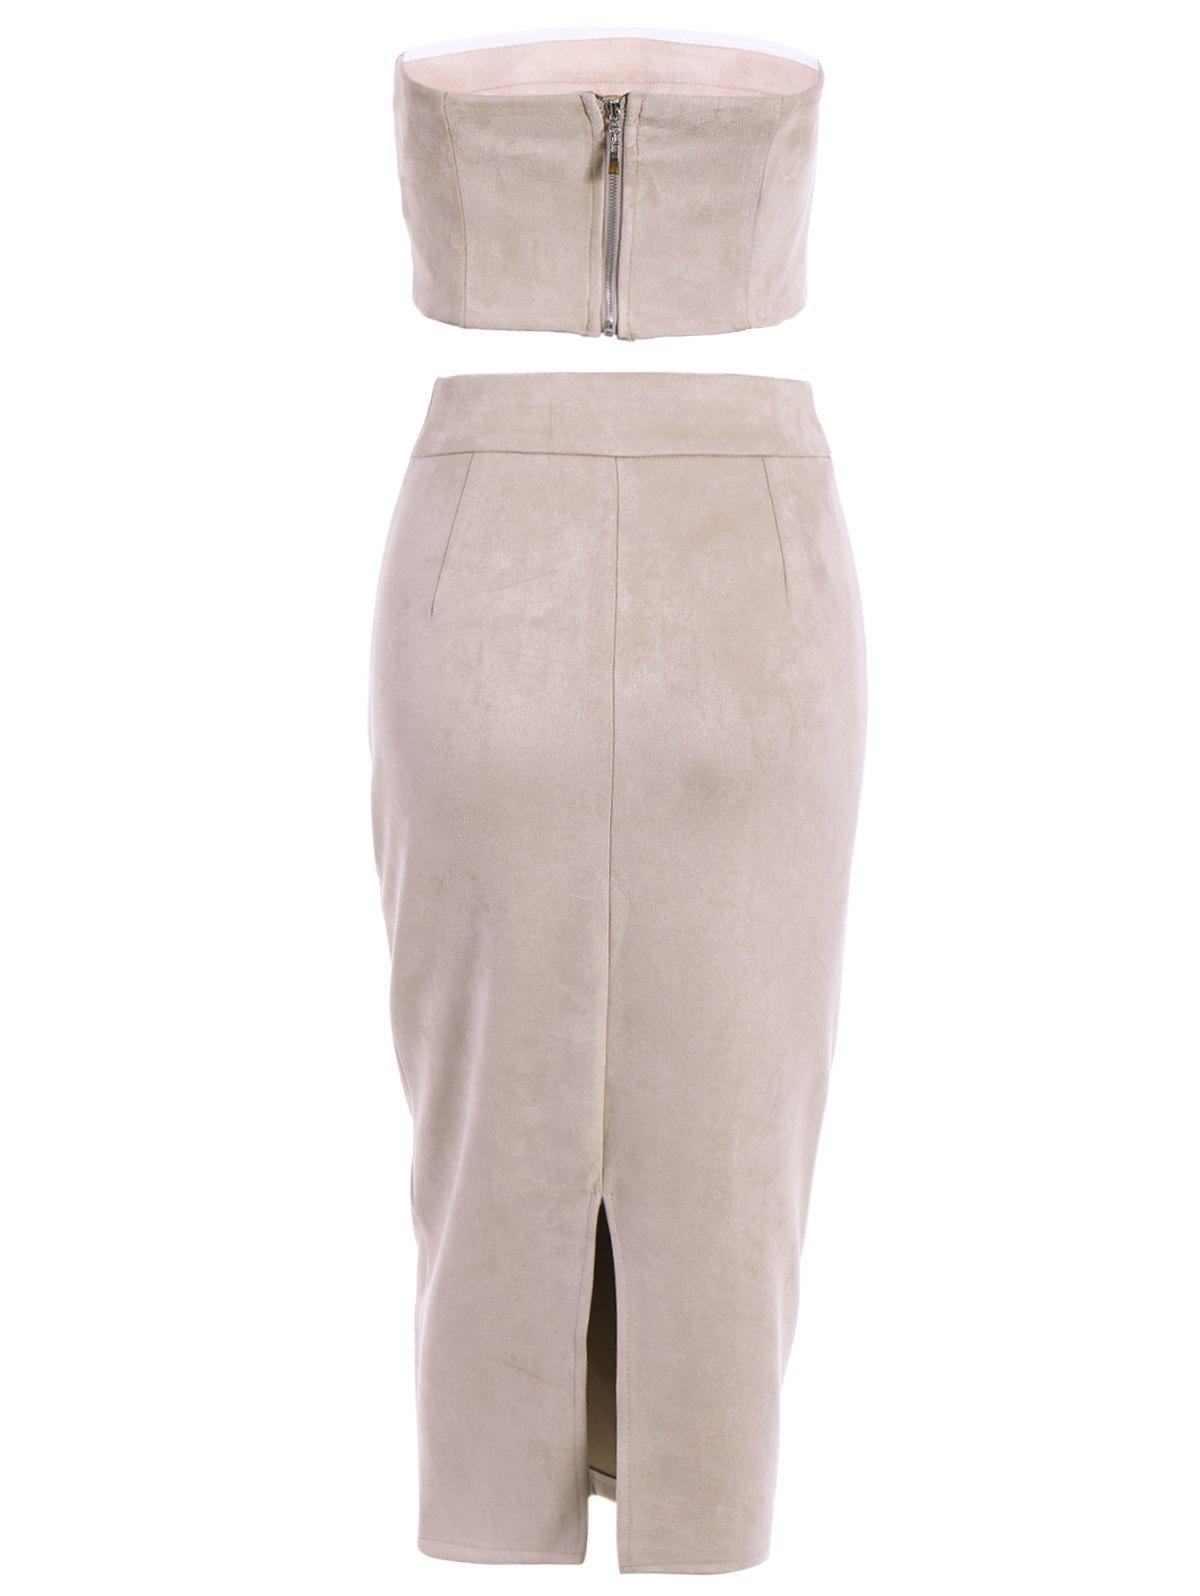 Suede Bodycon Midi Skirt with Tube Top - LIGHT APRICOT PINK L